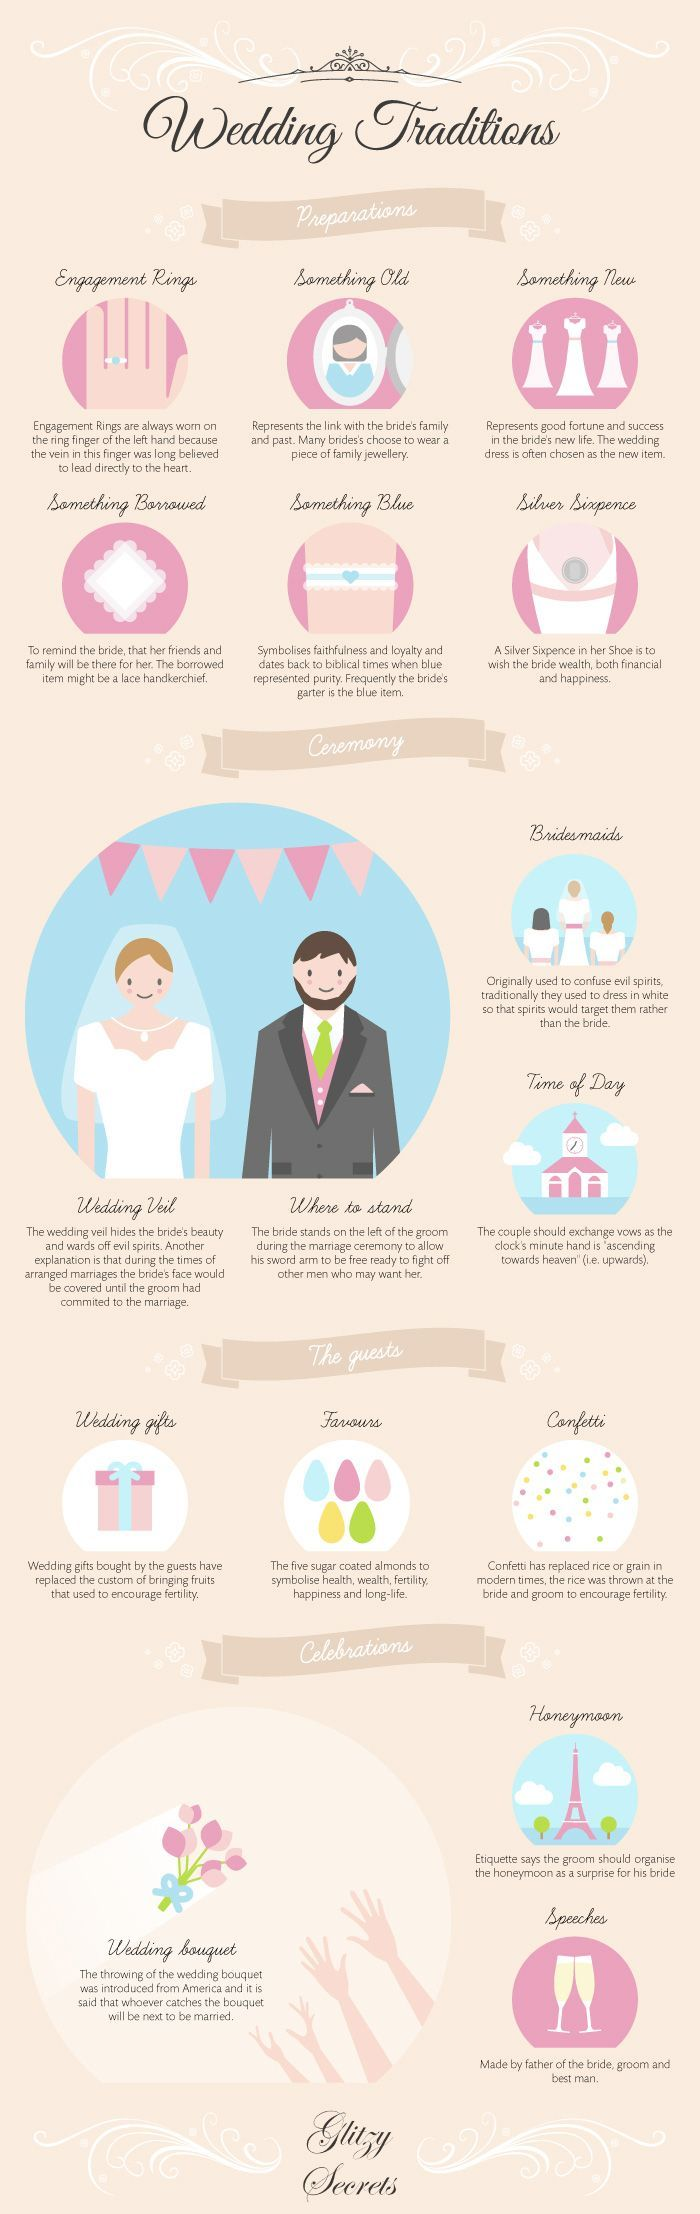 While you're wedding planning,certain details may not be very clear at first–like what kind of flowers are only available during your wedding season or who should give a speech at the reception. Among other things, there is so much for you to learn! But don't worry. We're outlining all the details below with professional tips […]